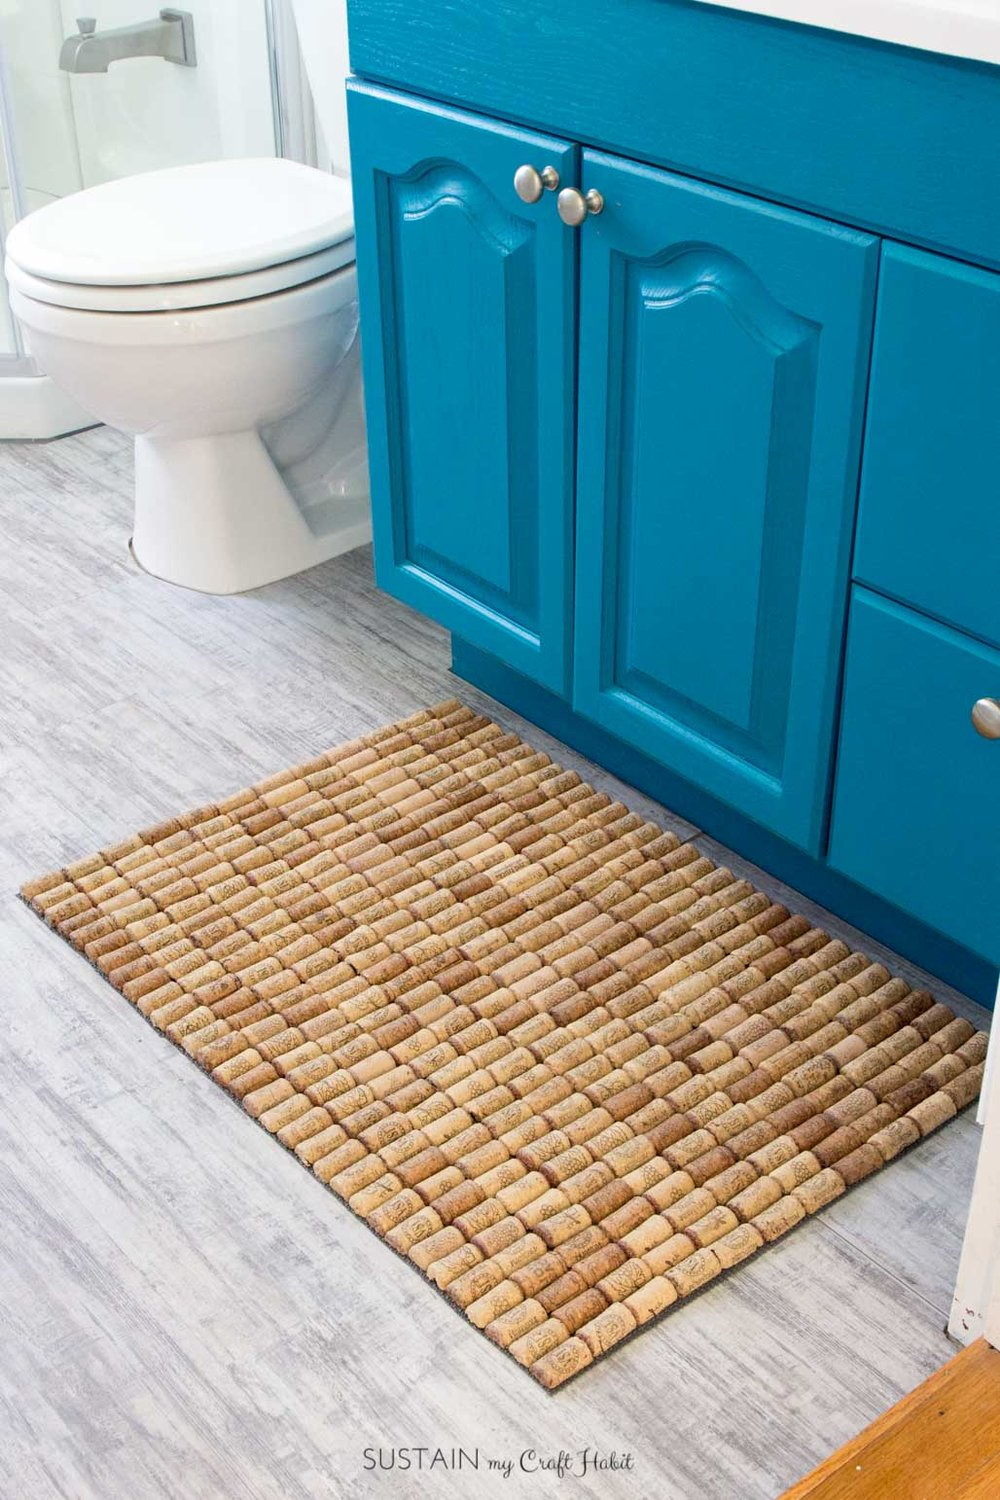 So fun! Learn how to make a DIY wine cork bath mat. Would also be great for the kitchen. The full step-by-step tutorial for this DIY upcycling home decor idea is included.